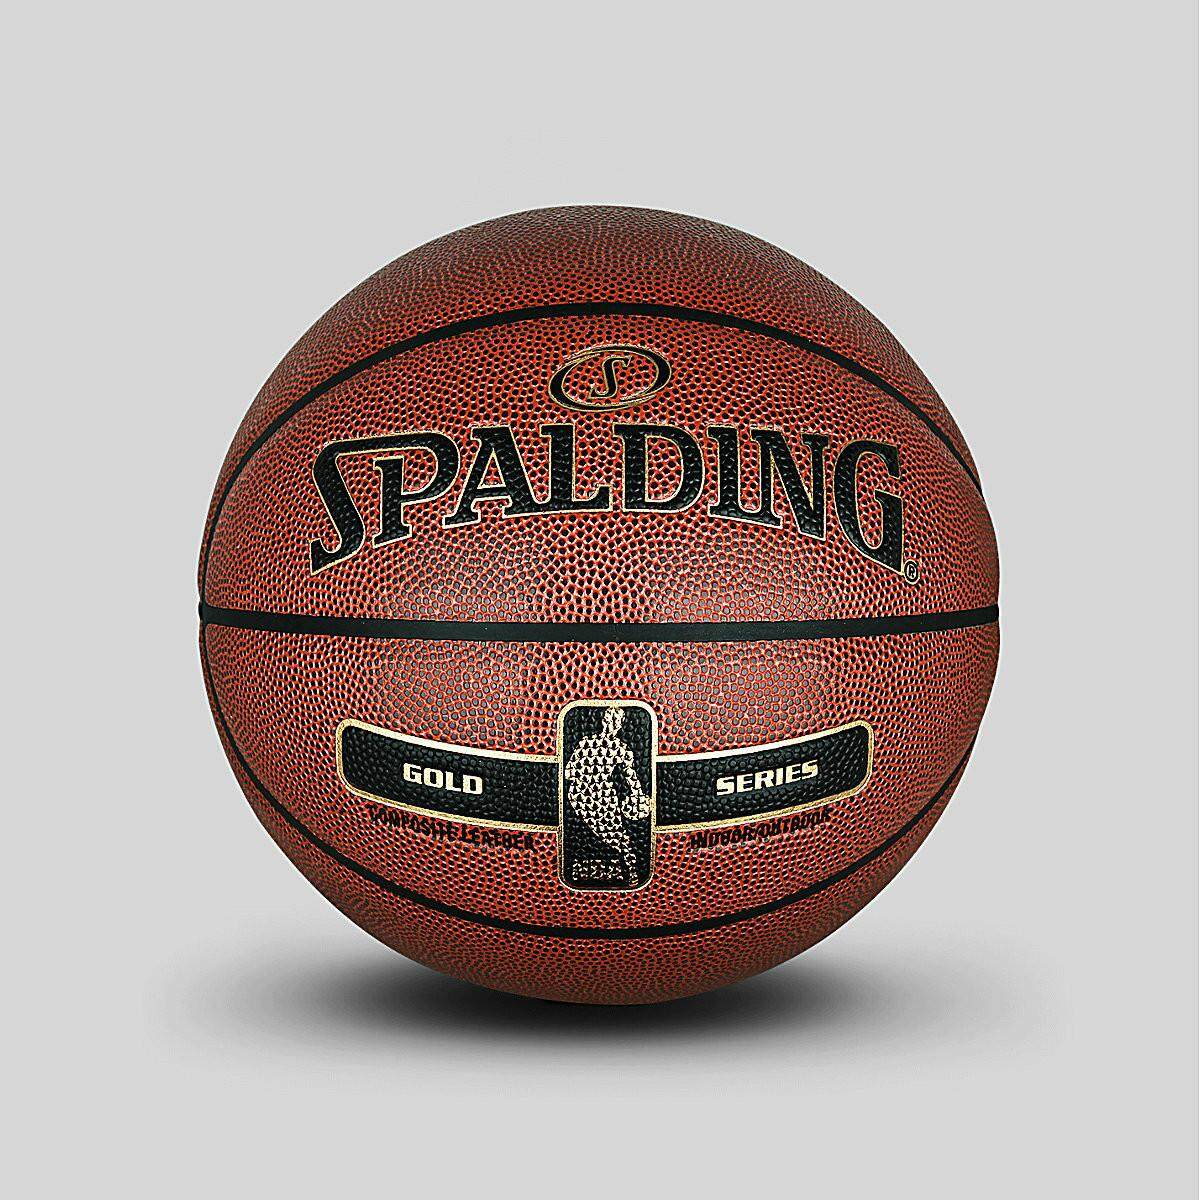 Basketballs For Sale Indoor Outdoor Online Brands Bola Basket Linning Spalding Official Flagship 2017nba Gold Classic Full Grain Surface Pu Basketball 76 014y Red